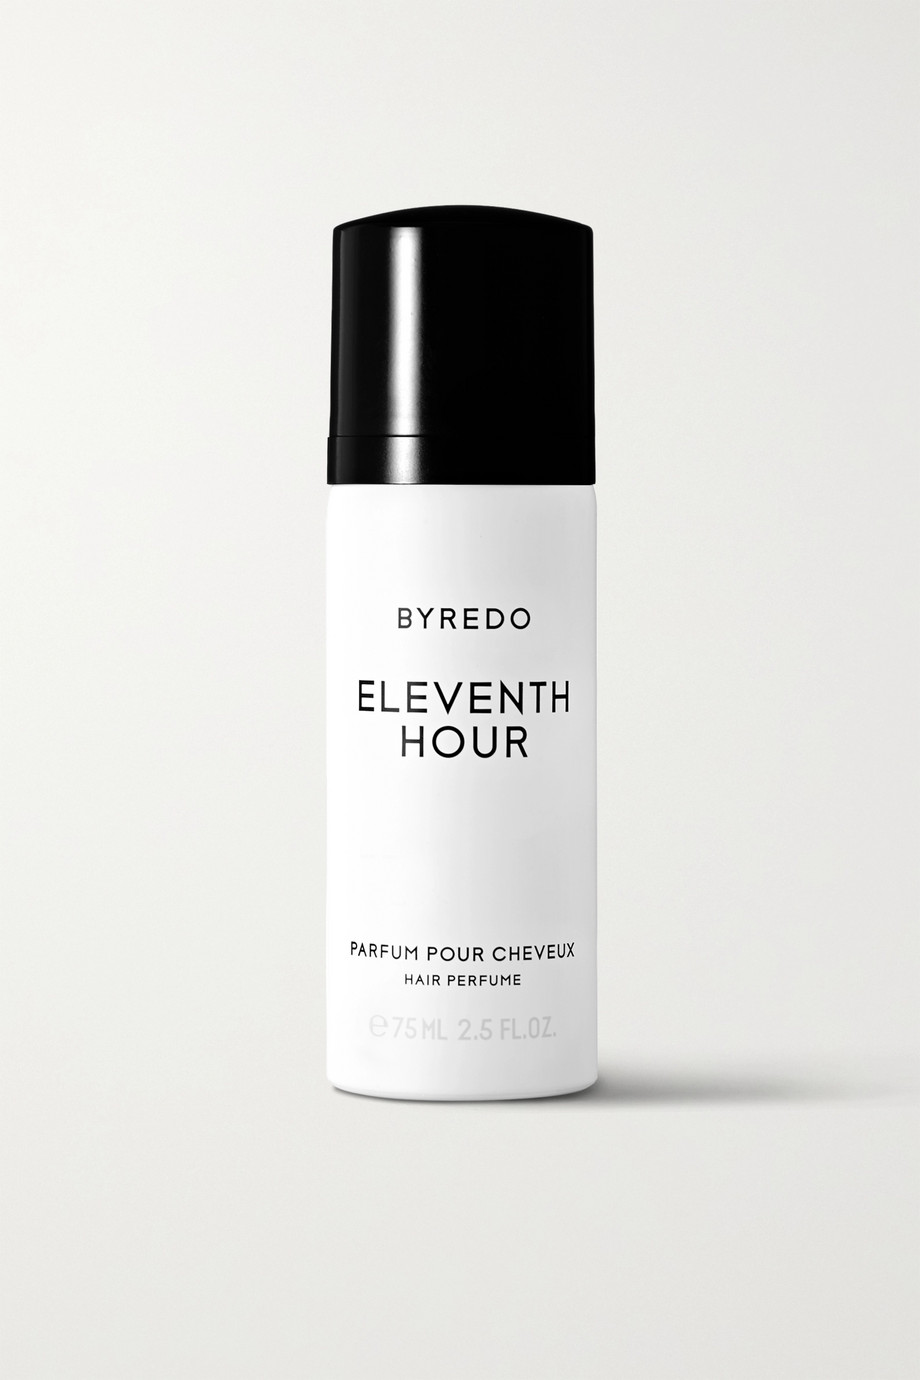 Byredo Eleventh Hour Hair Perfume, 75 ml – Haarparfum